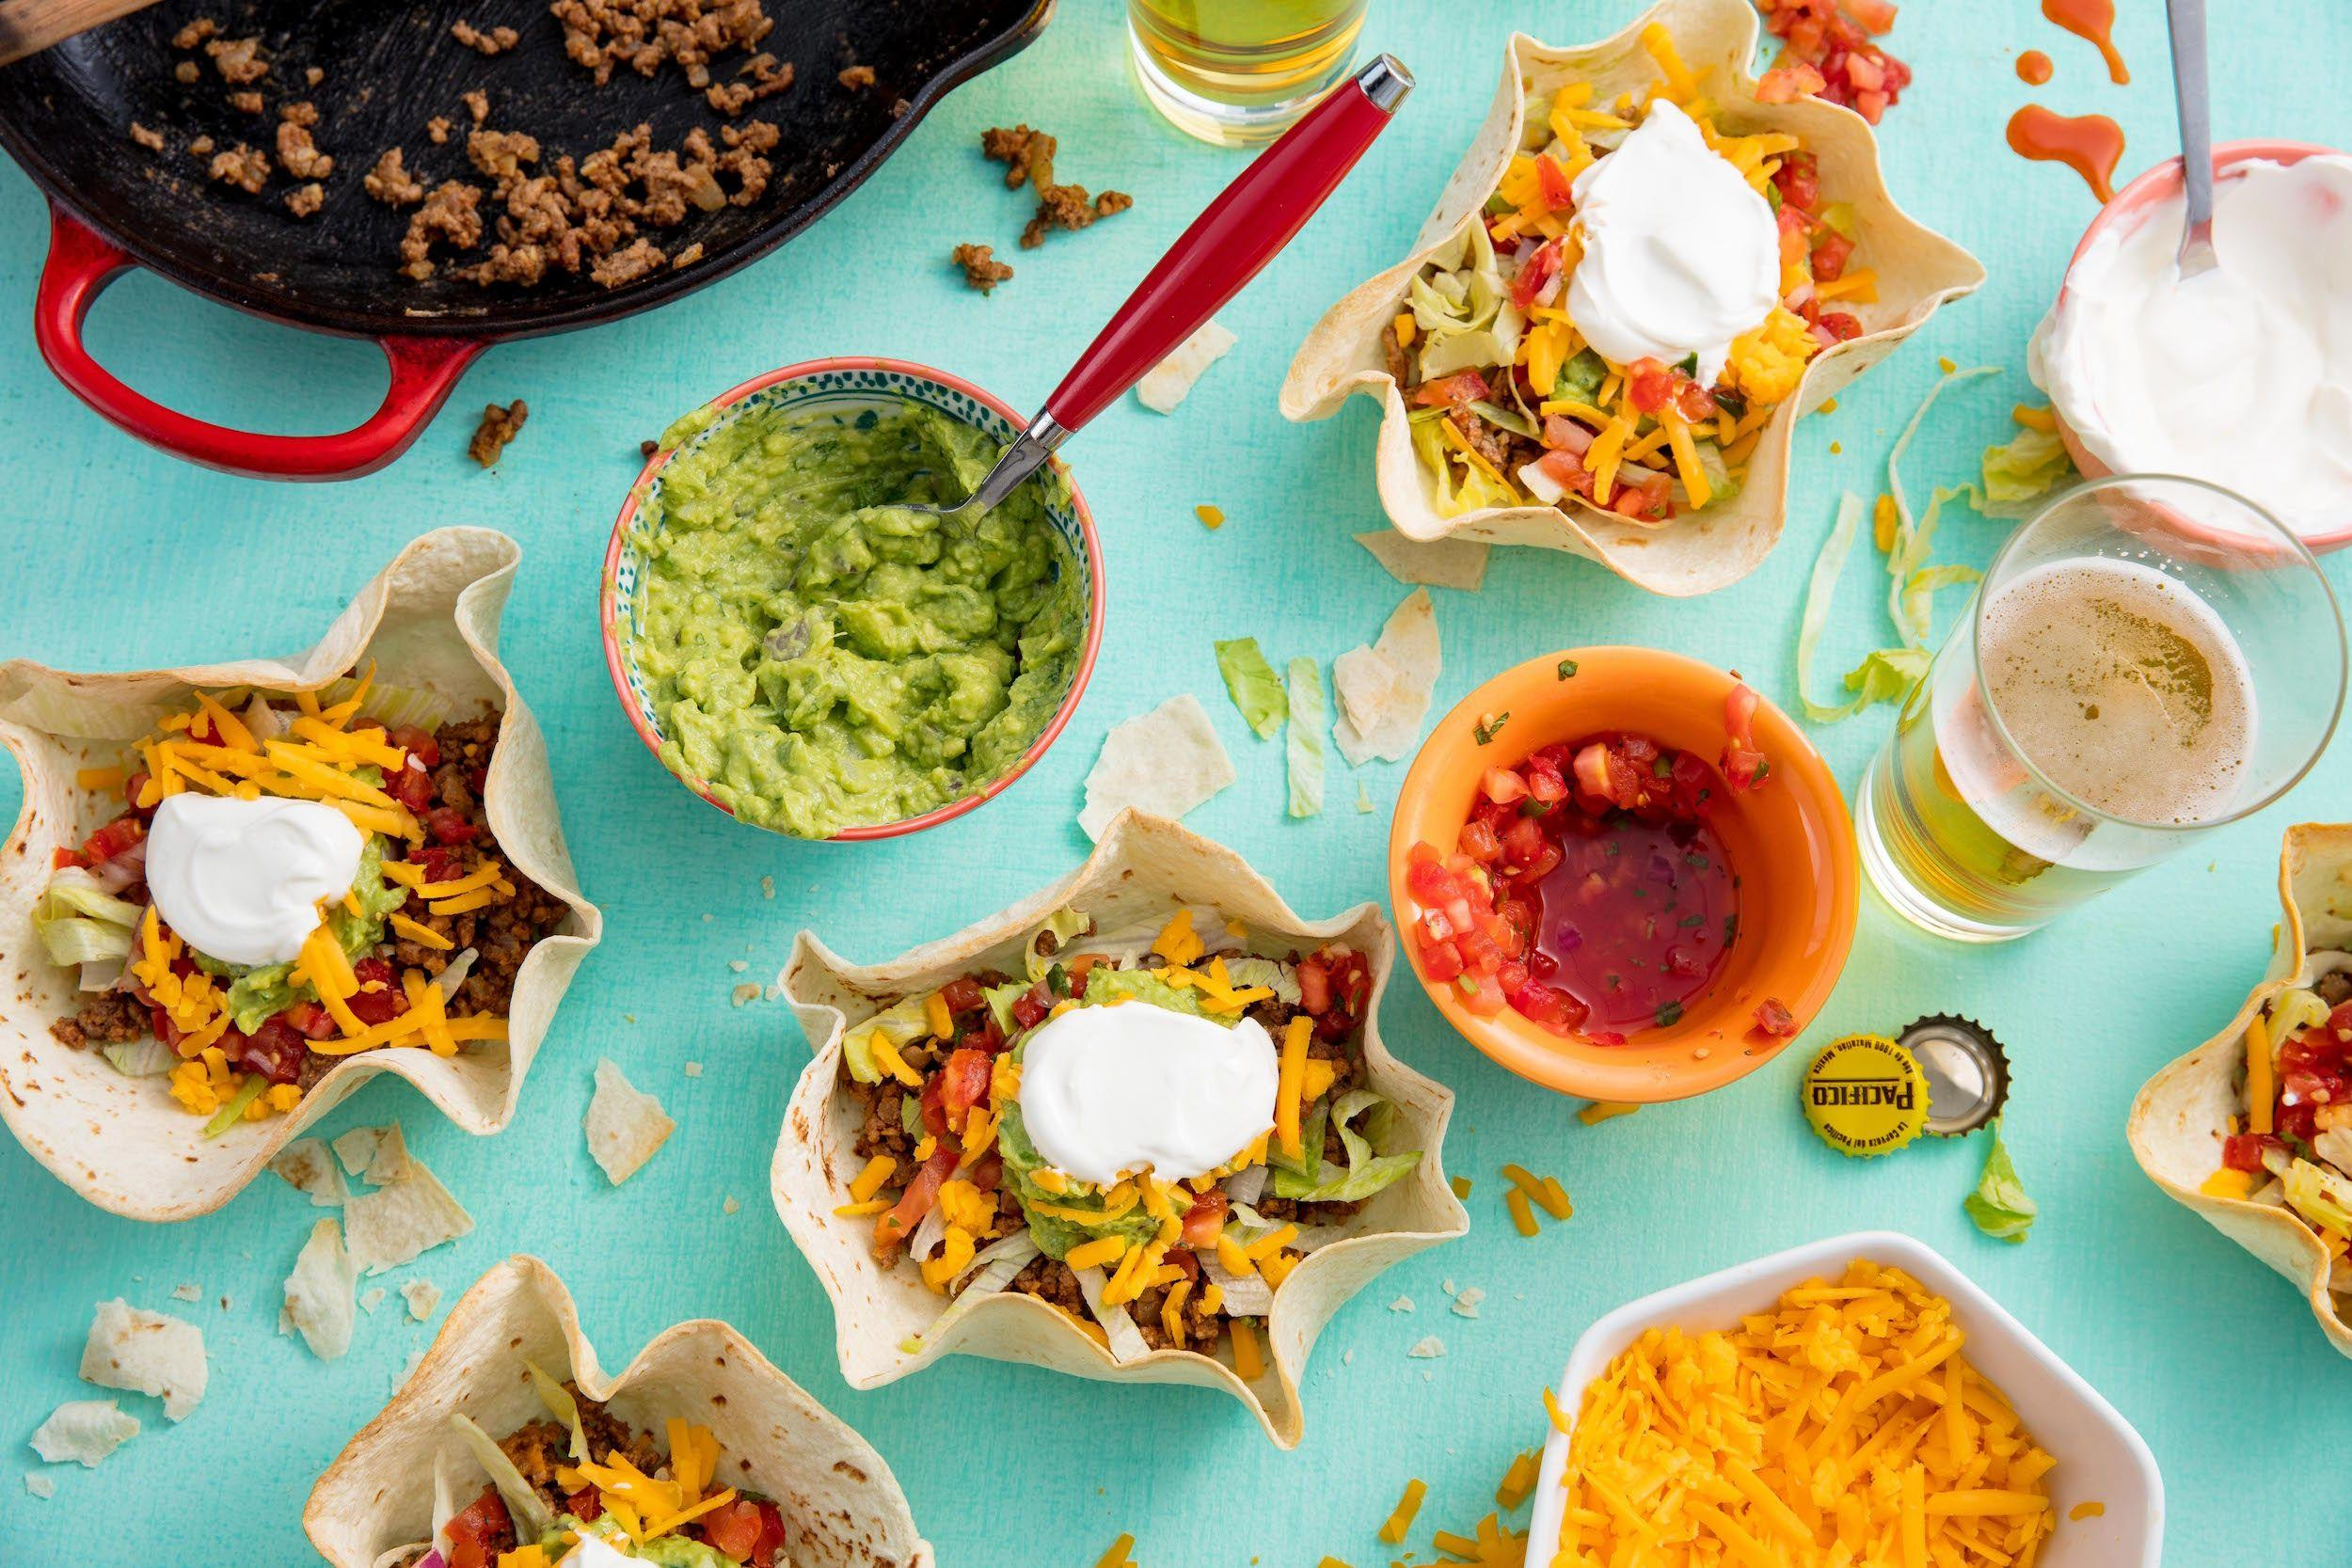 """<p>Tacos, quesadillas, burritos, enchiladas... if you don't like Mexican food, we've got some questions. Whether it's Taco Tuesday, Cinco de Mayo, or a Friday night, these recipes are fun enough for a party, and easy enough to make a delish weeknight dinner. Once you've tried all of these, we've got <a href=""""/cooking/recipe-ideas/g2786/easy-taco-recipes/"""" data-ylk=""""slk:50 amazing tacos"""" class=""""link rapid-noclick-resp"""">50 amazing tacos</a> for you to work your way through.<br></p>"""